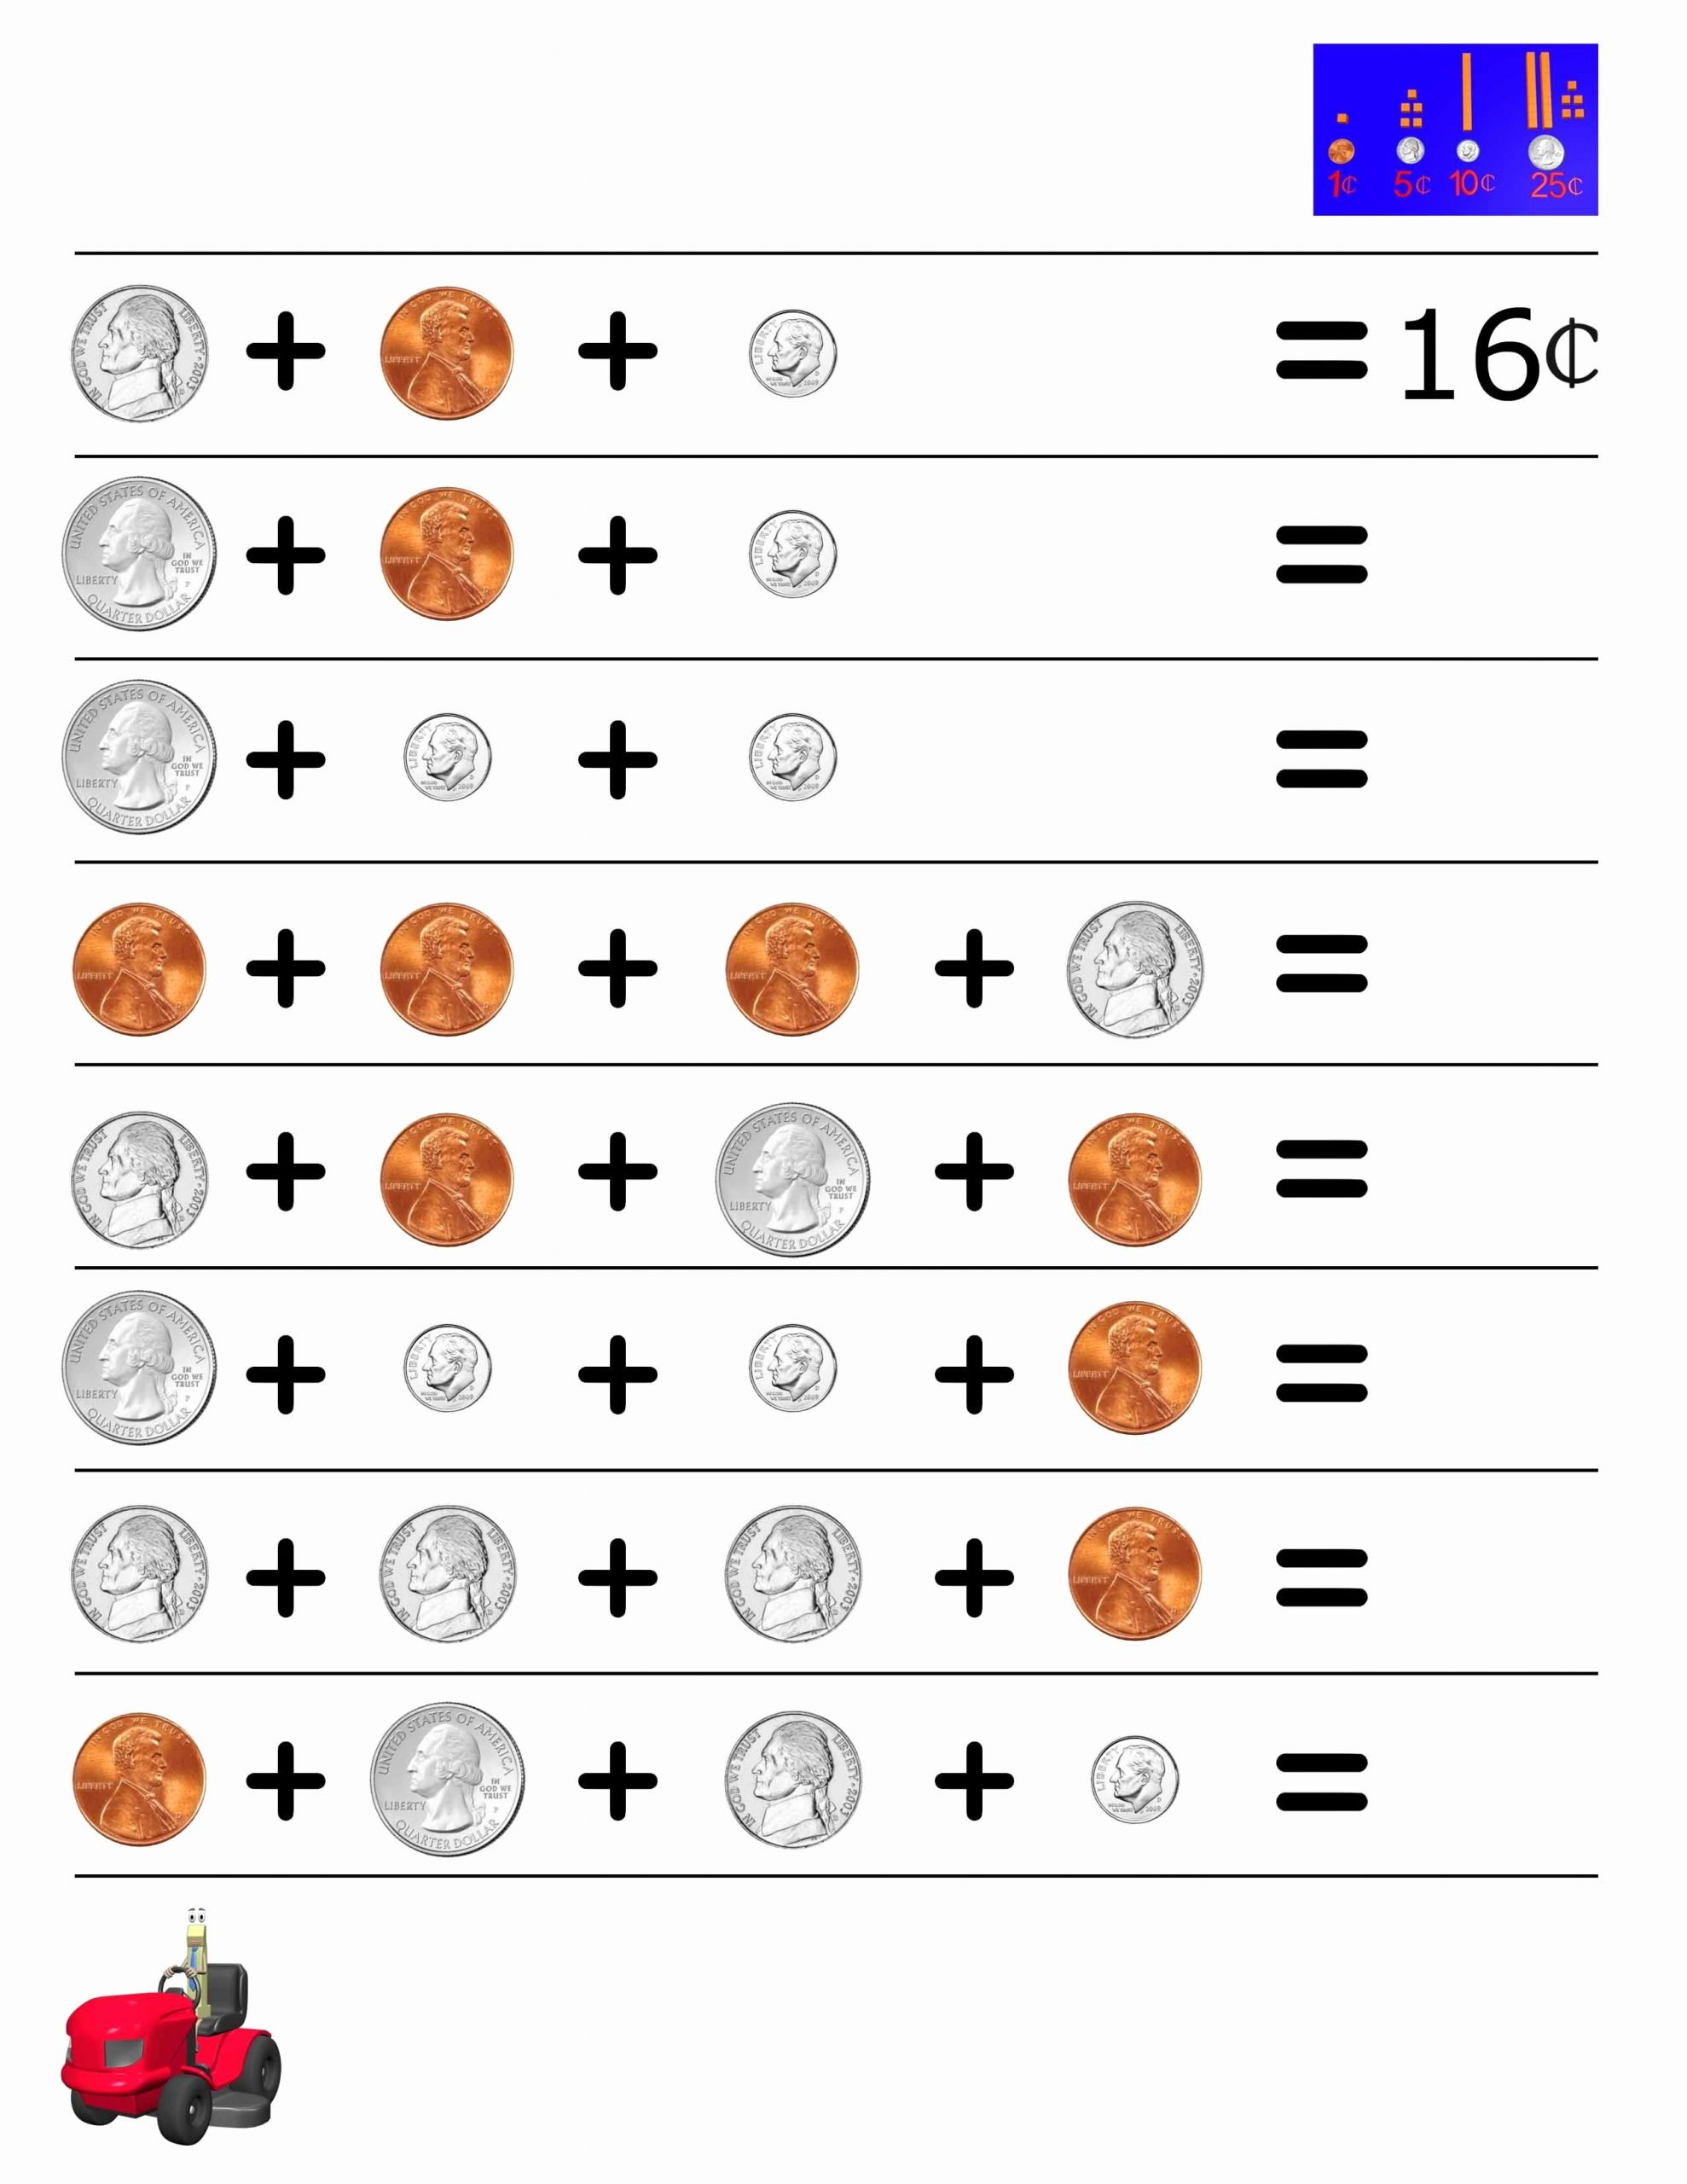 Counting Coins Worksheets 2nd Grade Ideas Money Worksheet for 2nd Grade Our Videos Help Reinforce